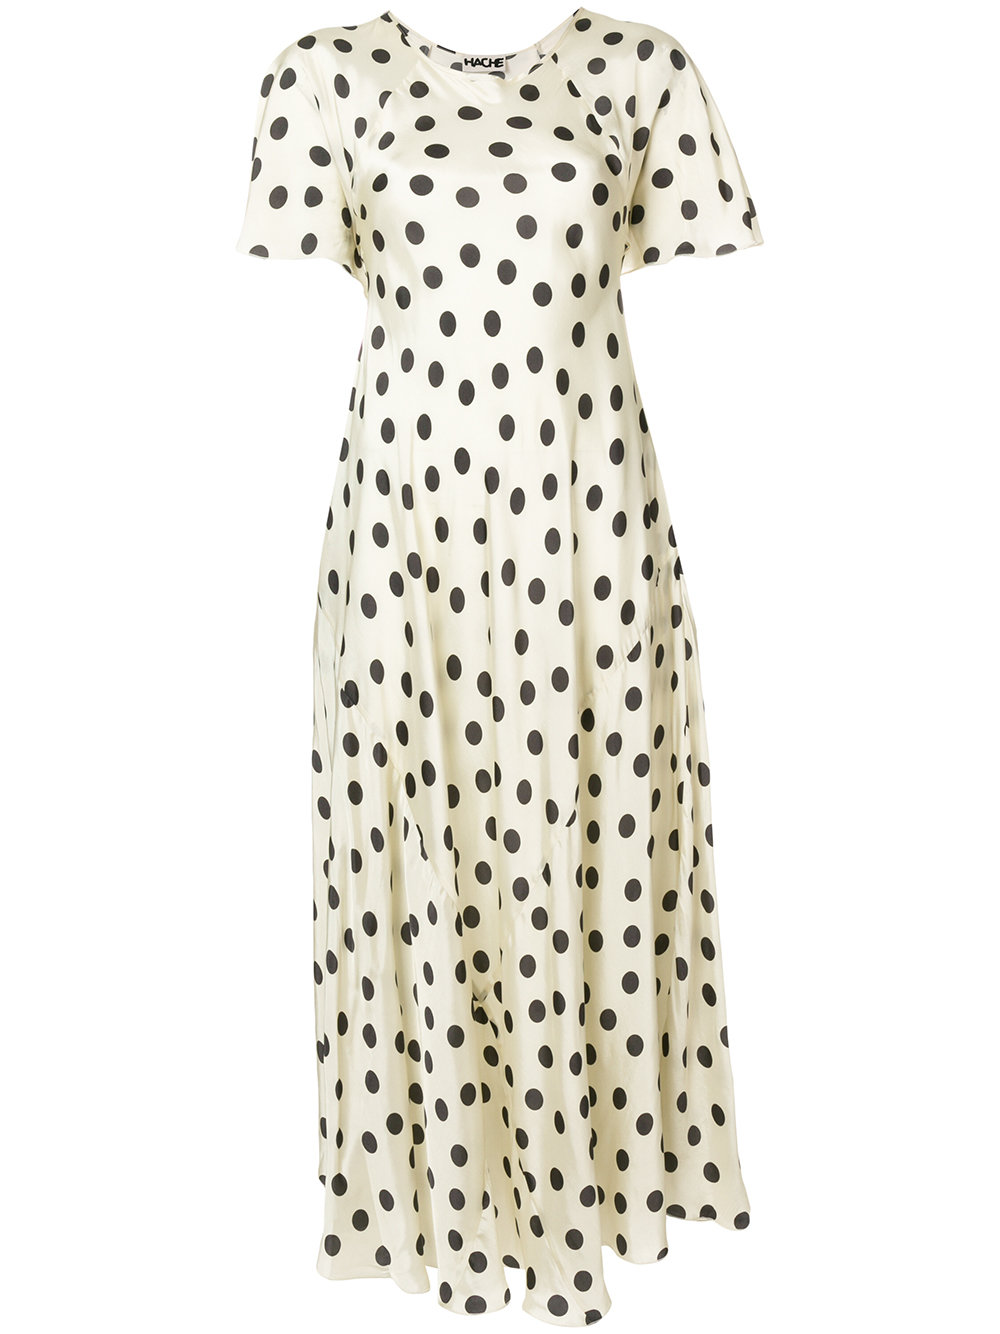 Hache polka dot dress.